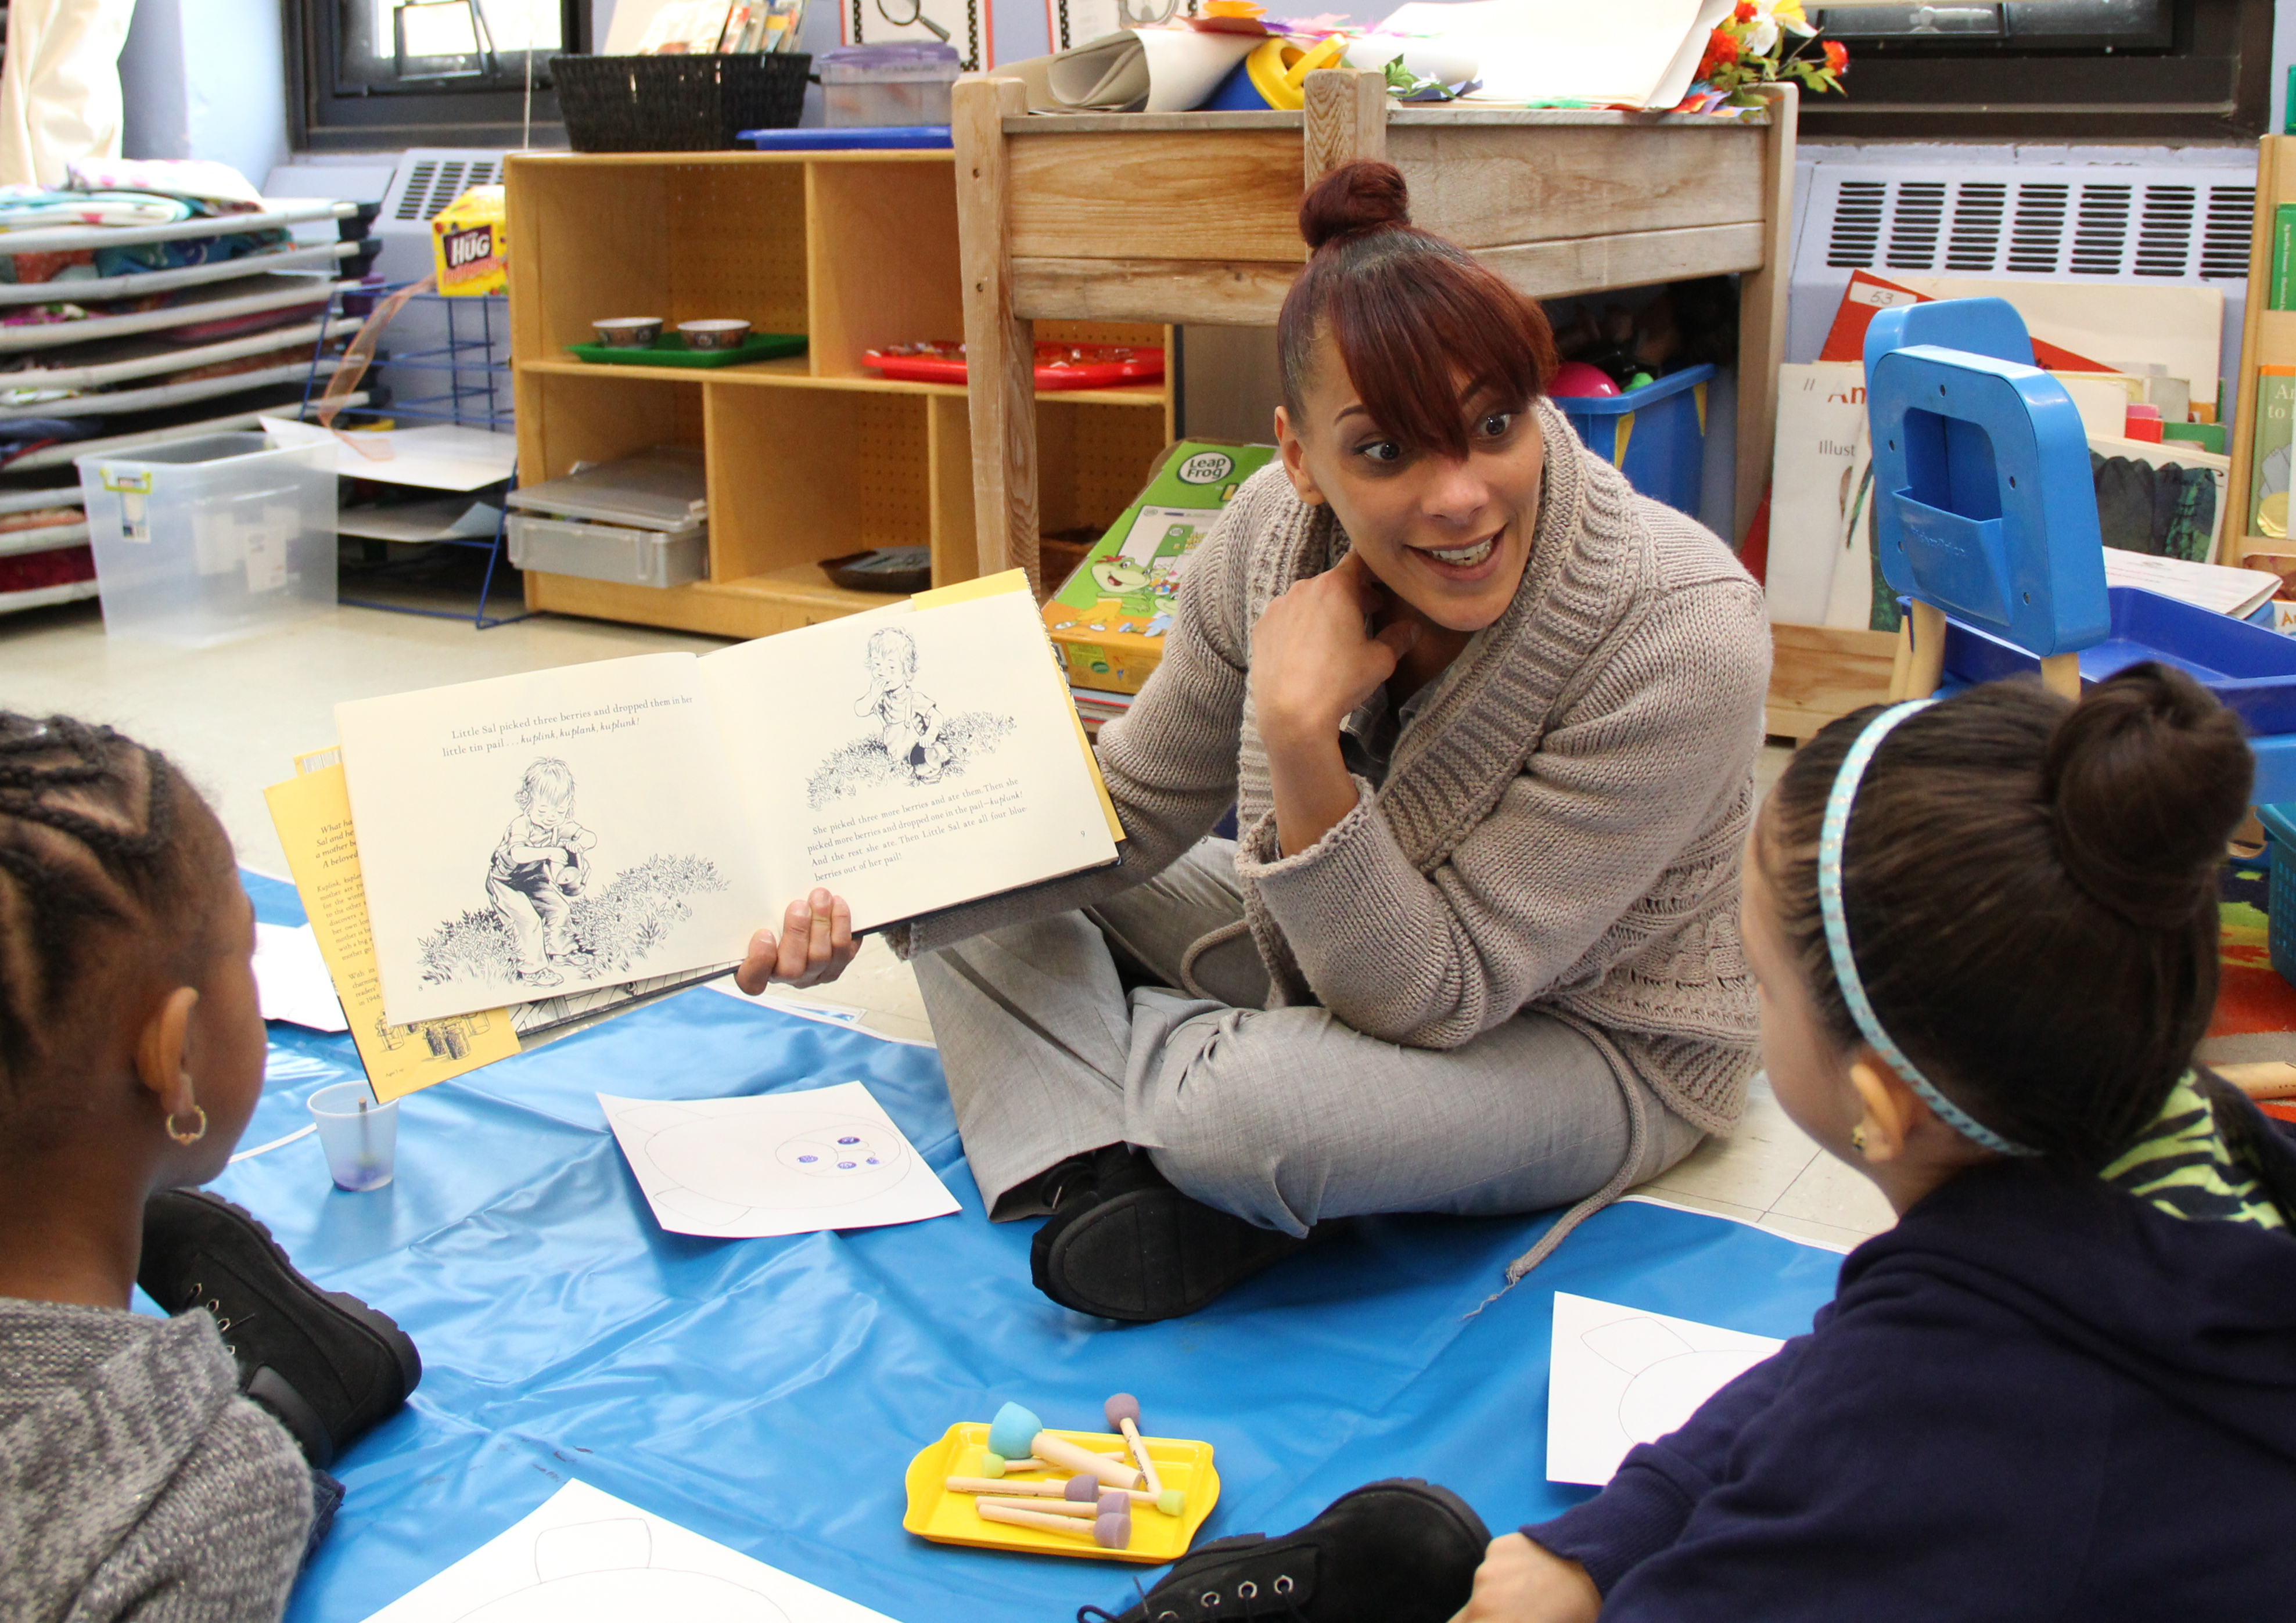 Holyoke Community College awarded $2.4 million in early education grants